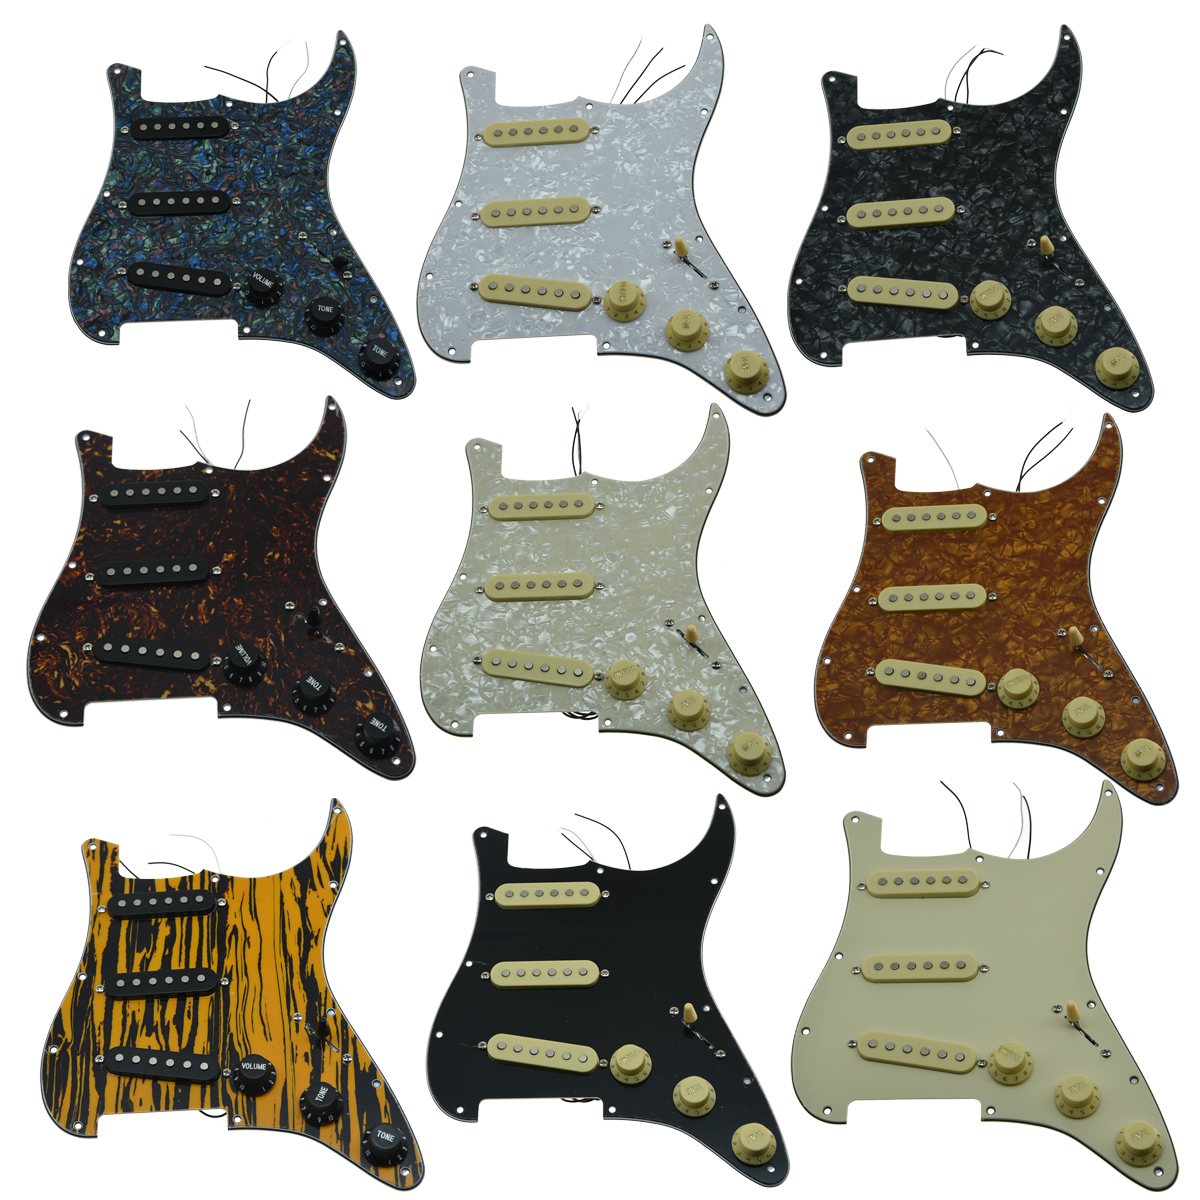 KAISH Various Loaded Strat SSS Pickguard Prewired ST Strat Pickguard with Pickups Fits for Fender musiclily 3ply pvc outline pickguard for fenderstrat st guitar custom